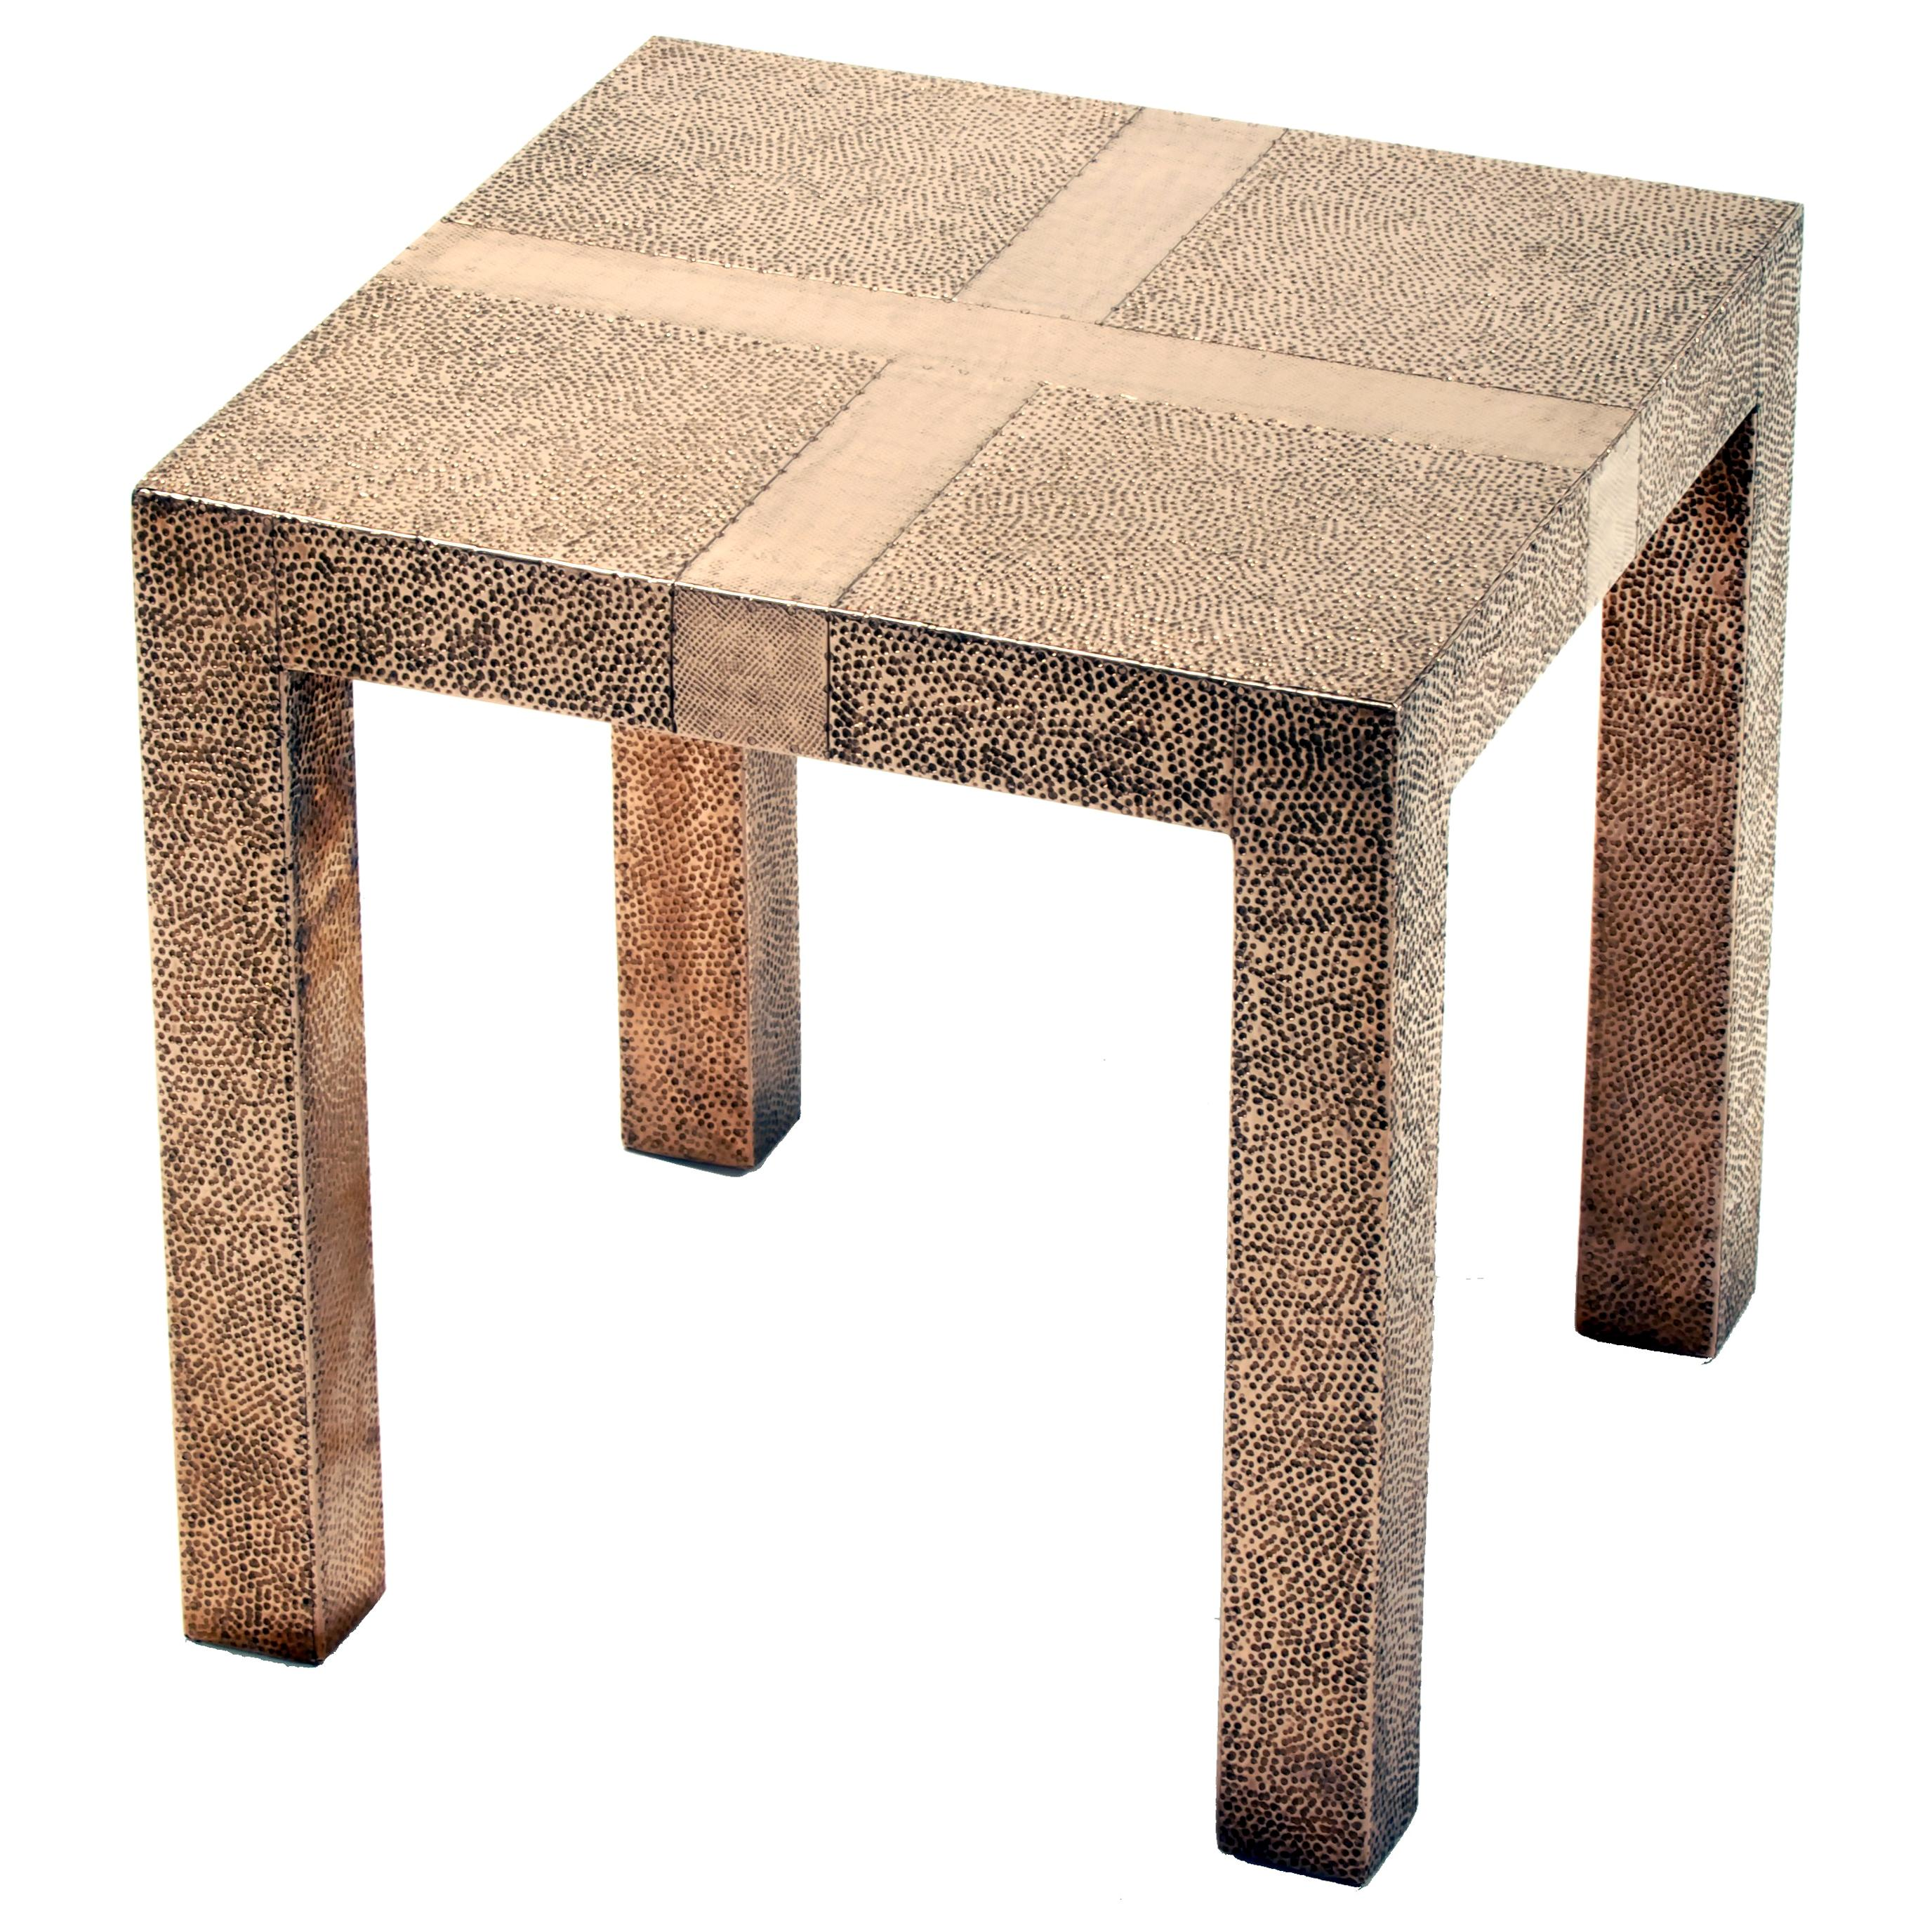 Square Drink Table